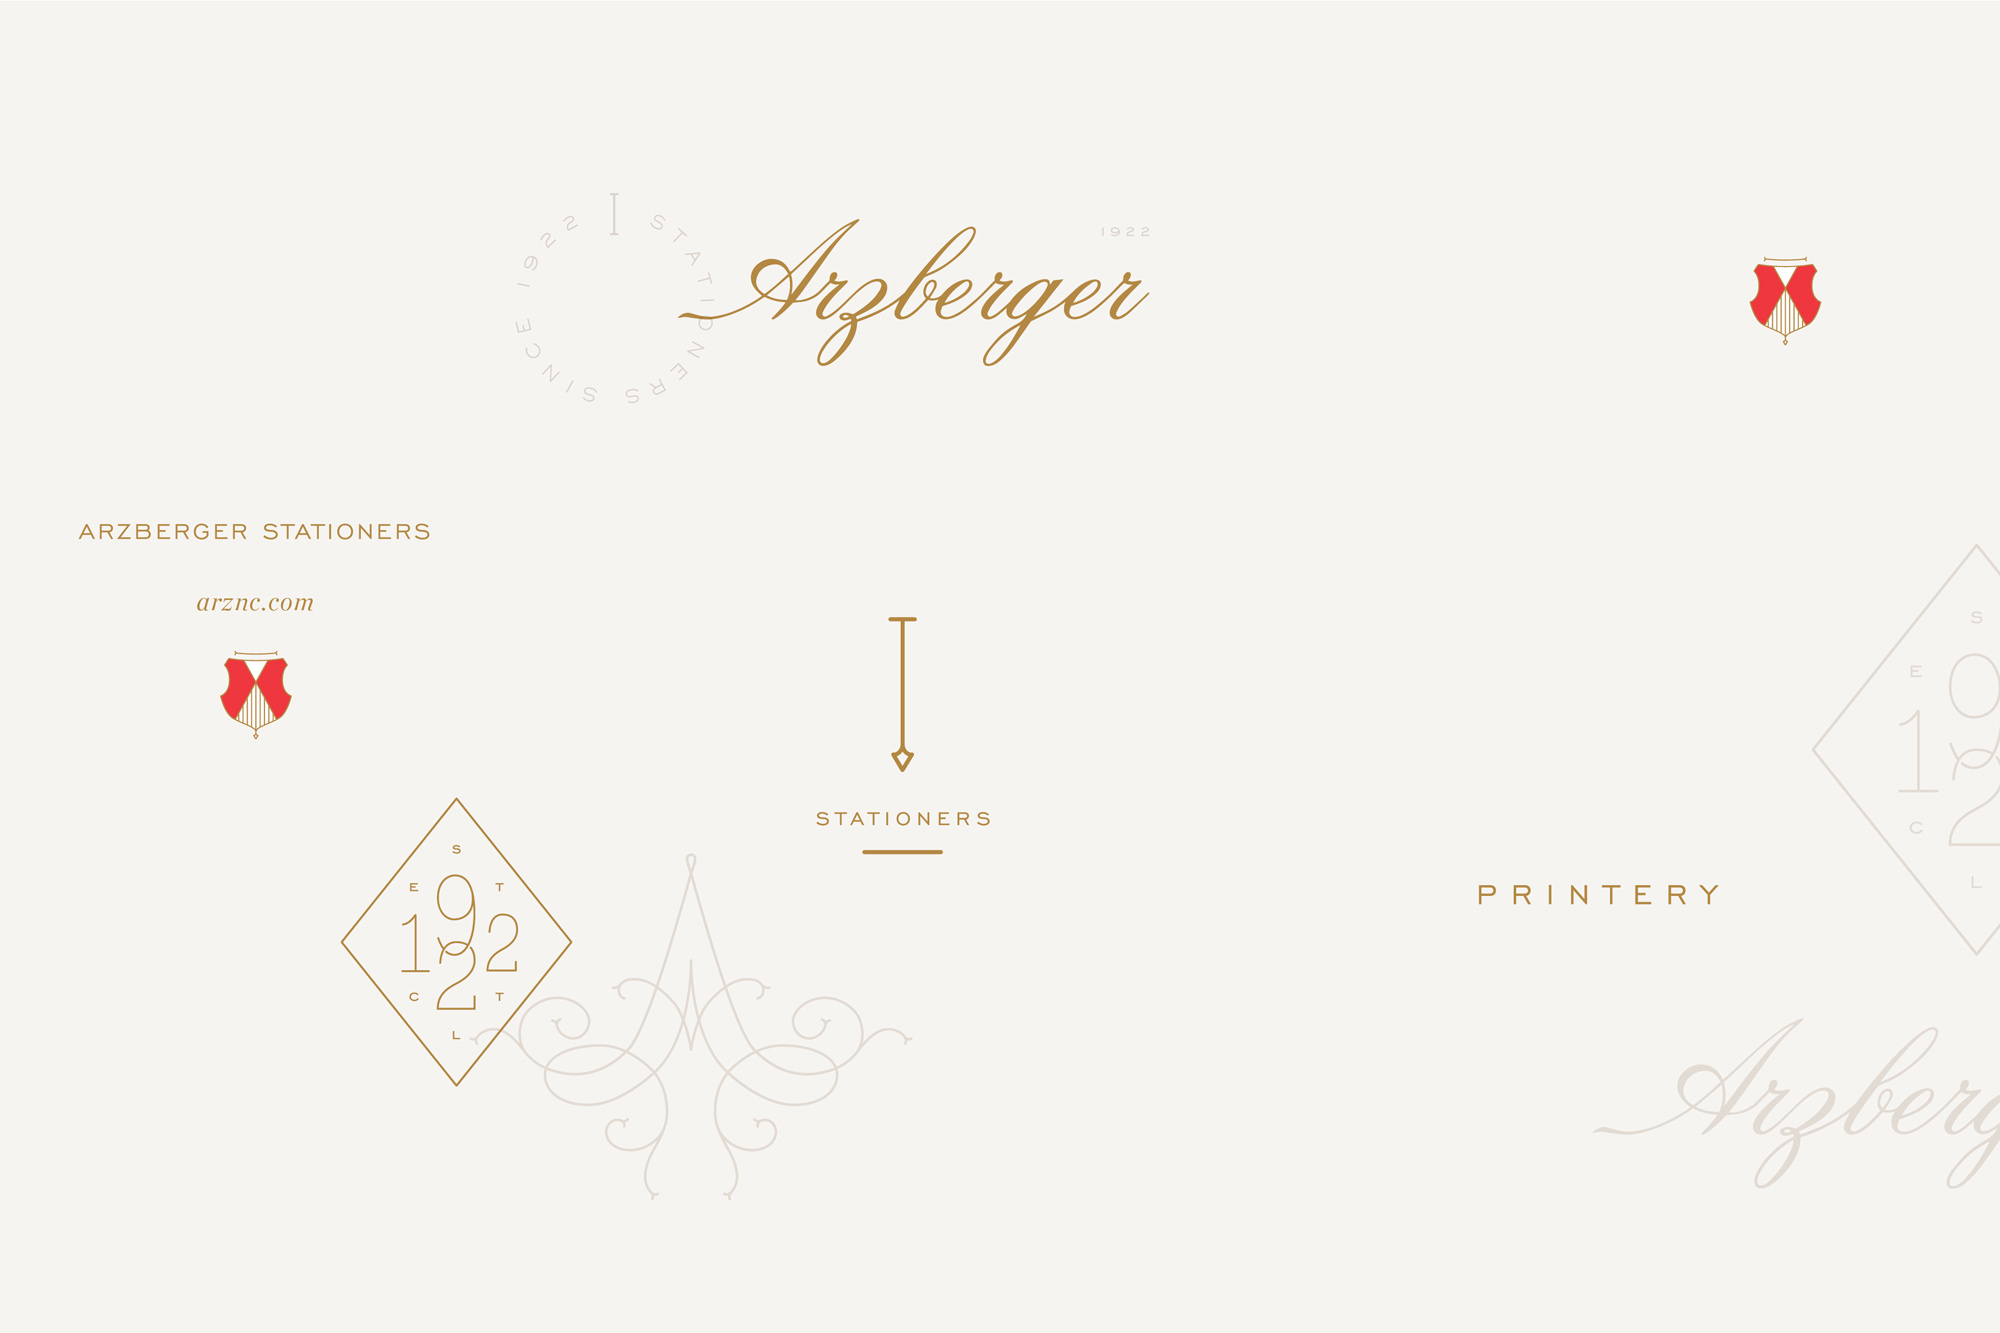 Arzberger Stationers | SDCO Partners